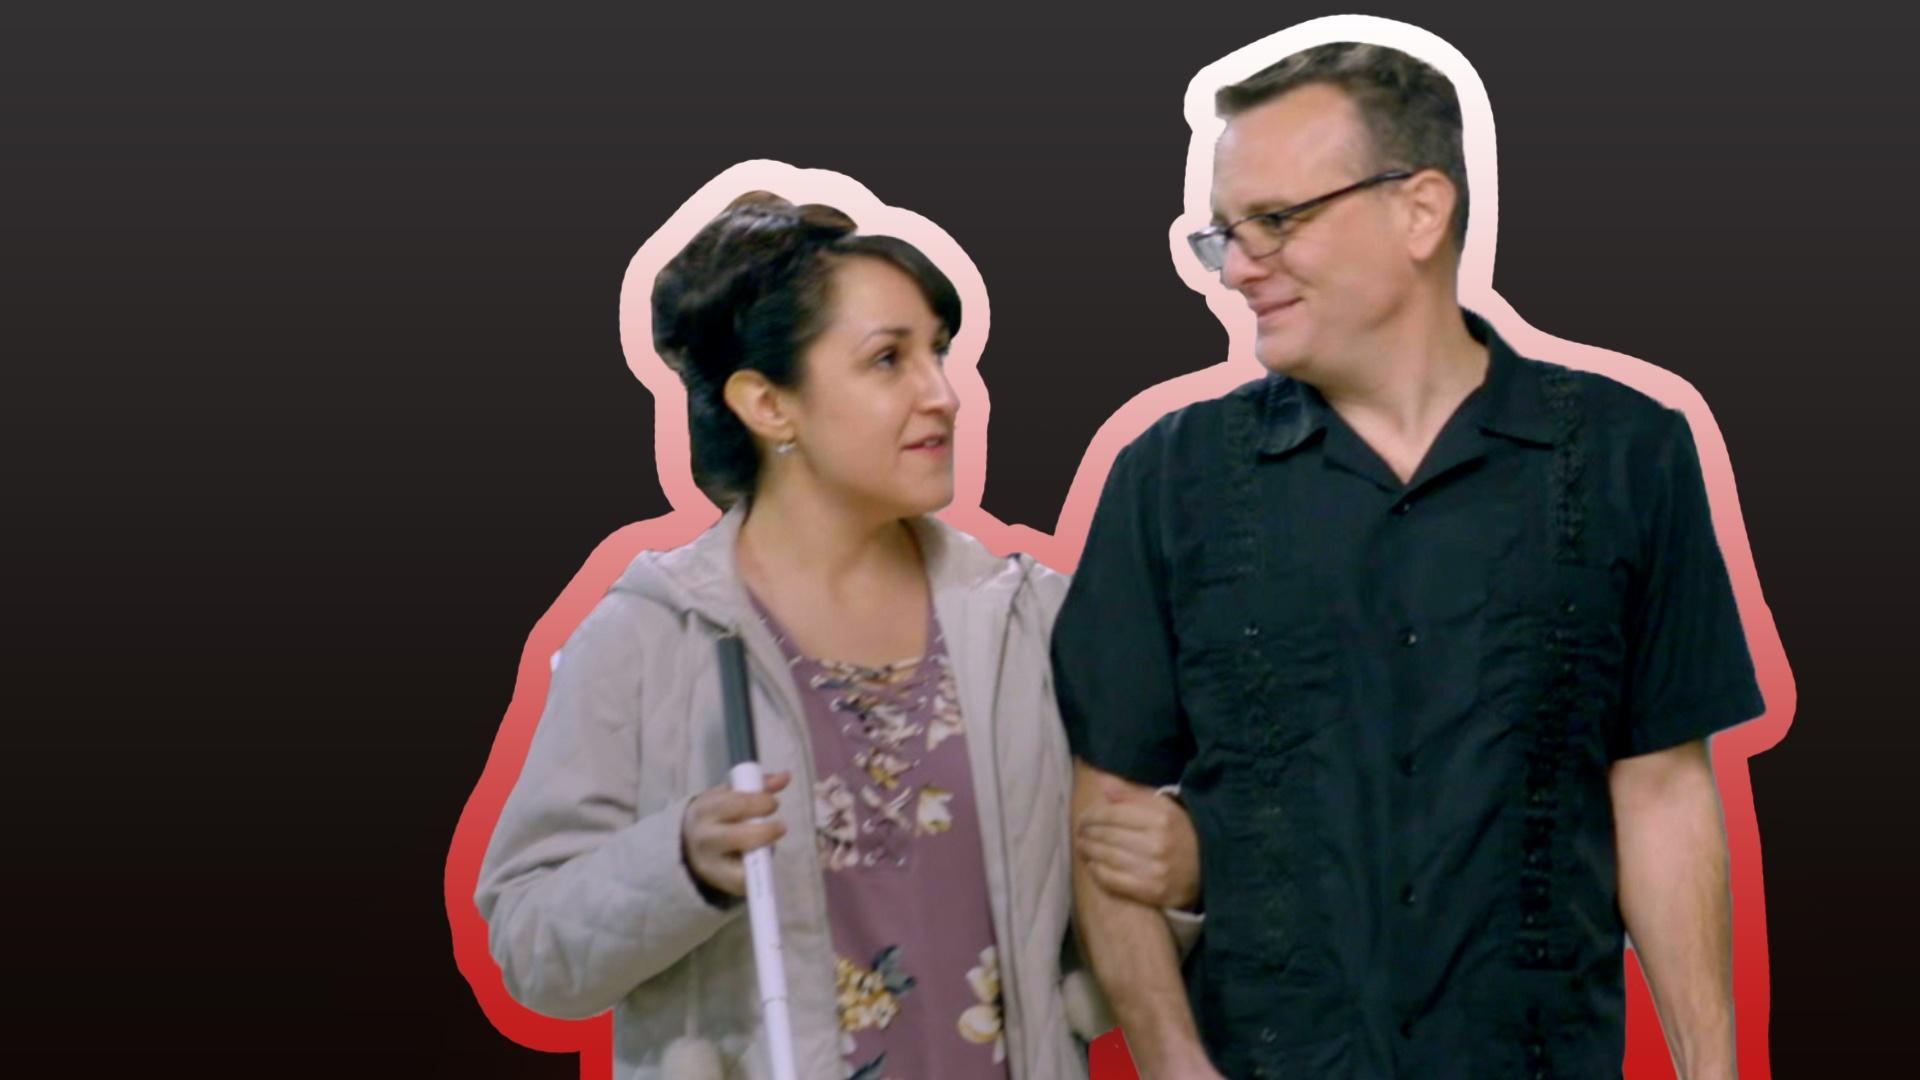 Thumbnail for: First Dates: From Awkward to Promising | Blind Love – Ep 2